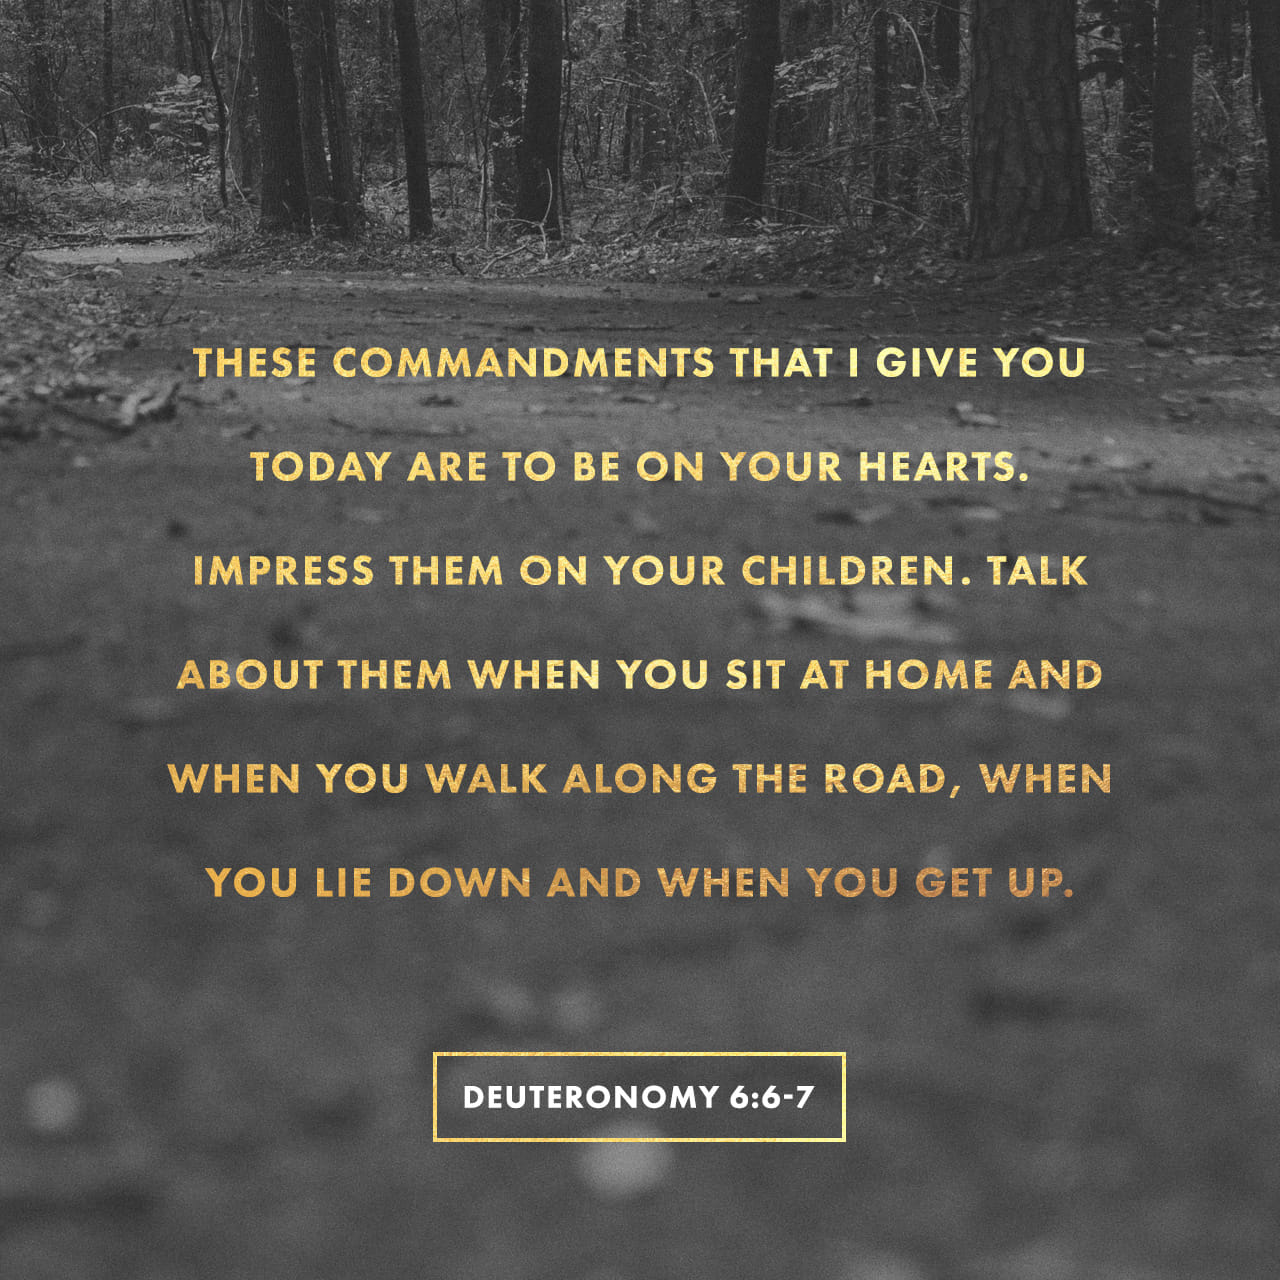 Deuteronomy 6:6-7 And you must commit yourselves wholeheartedly to these commands that I am giving you today. Repeat them again and again to your children. Talk about them when you are at home and when you are on the r | New Living Translation (NLT)